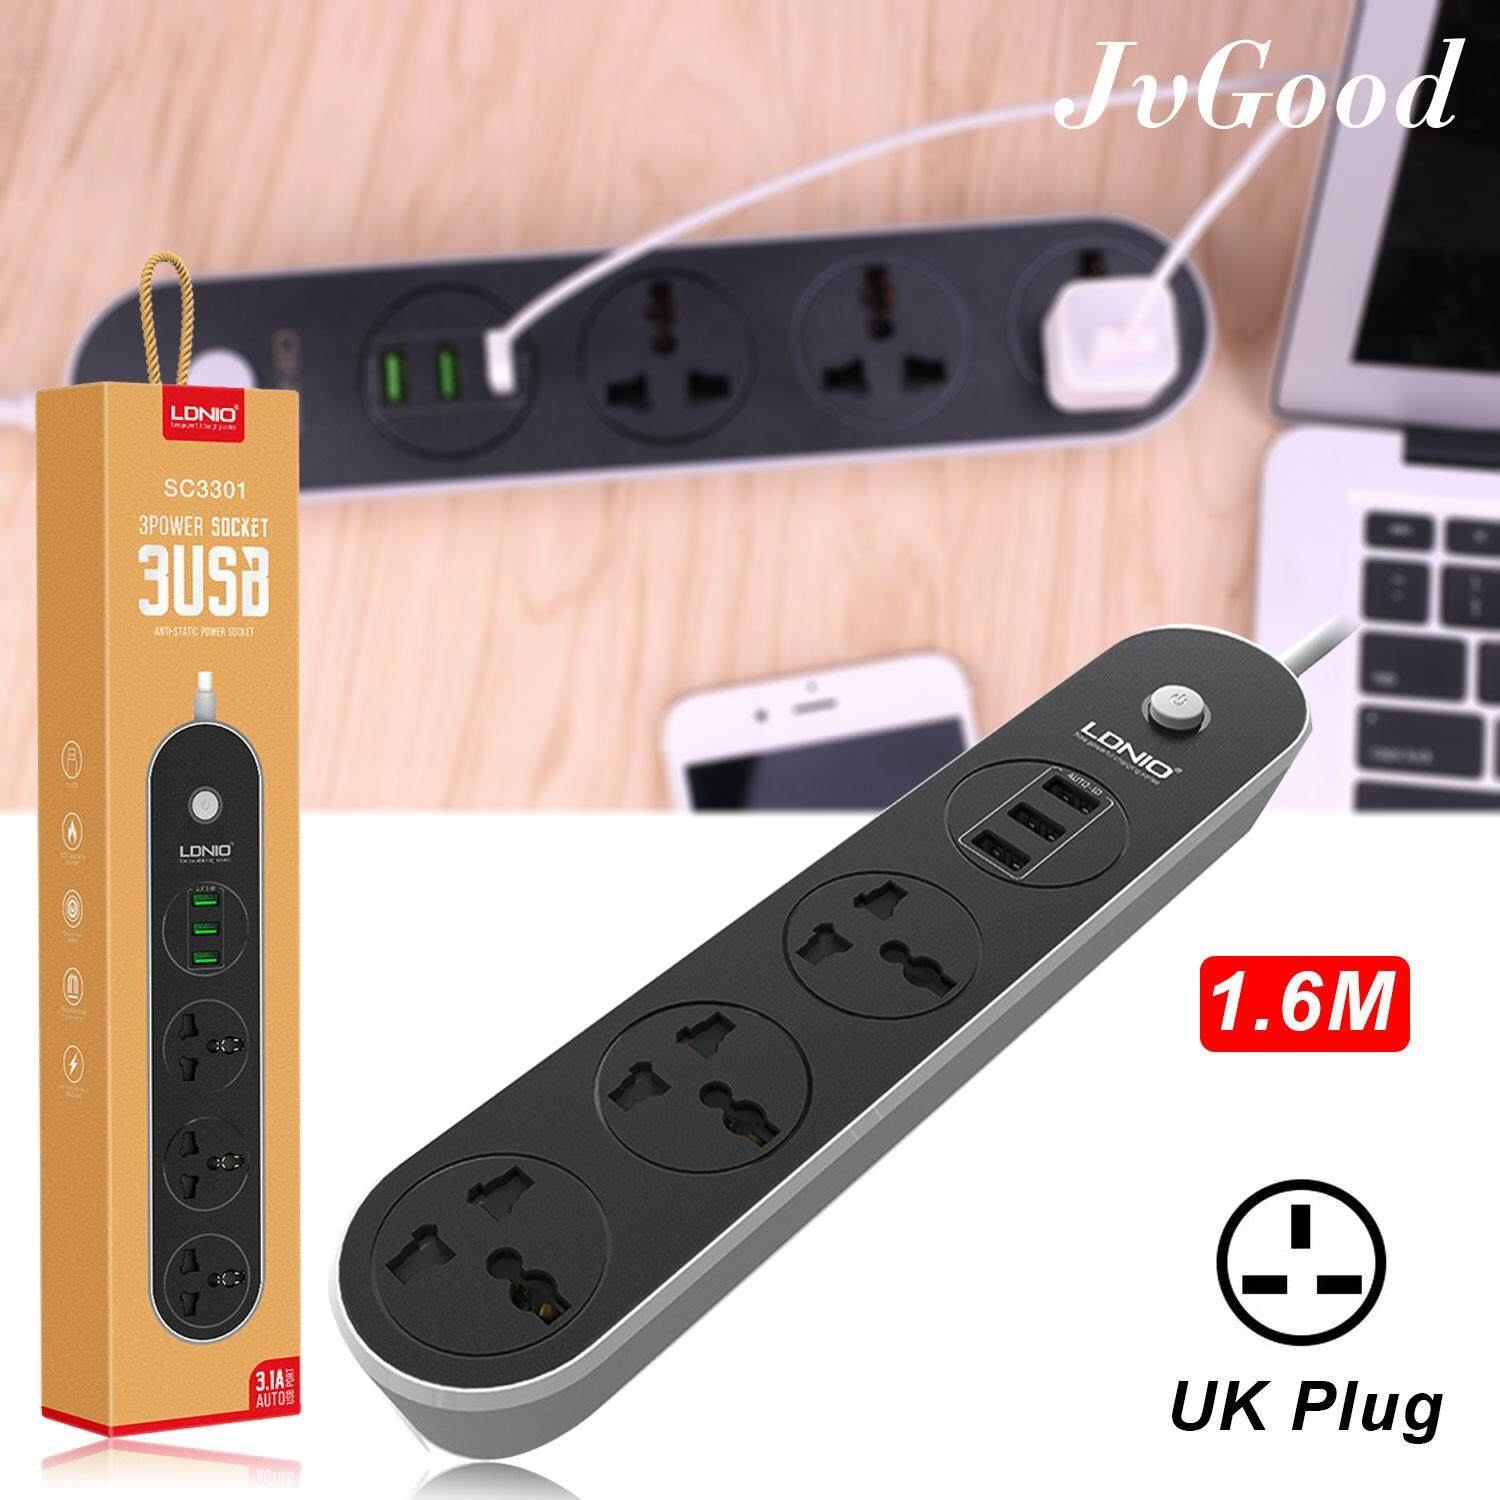 Jvgood Universal Power Strip Adapter Power Extension Surge Protector With 3 Sockets Outlets 3 Usb Extension Port 1.6m Cable For Multiple Devices Smart Phone Tablet Laptop Computer Uk Plug By Jvgood